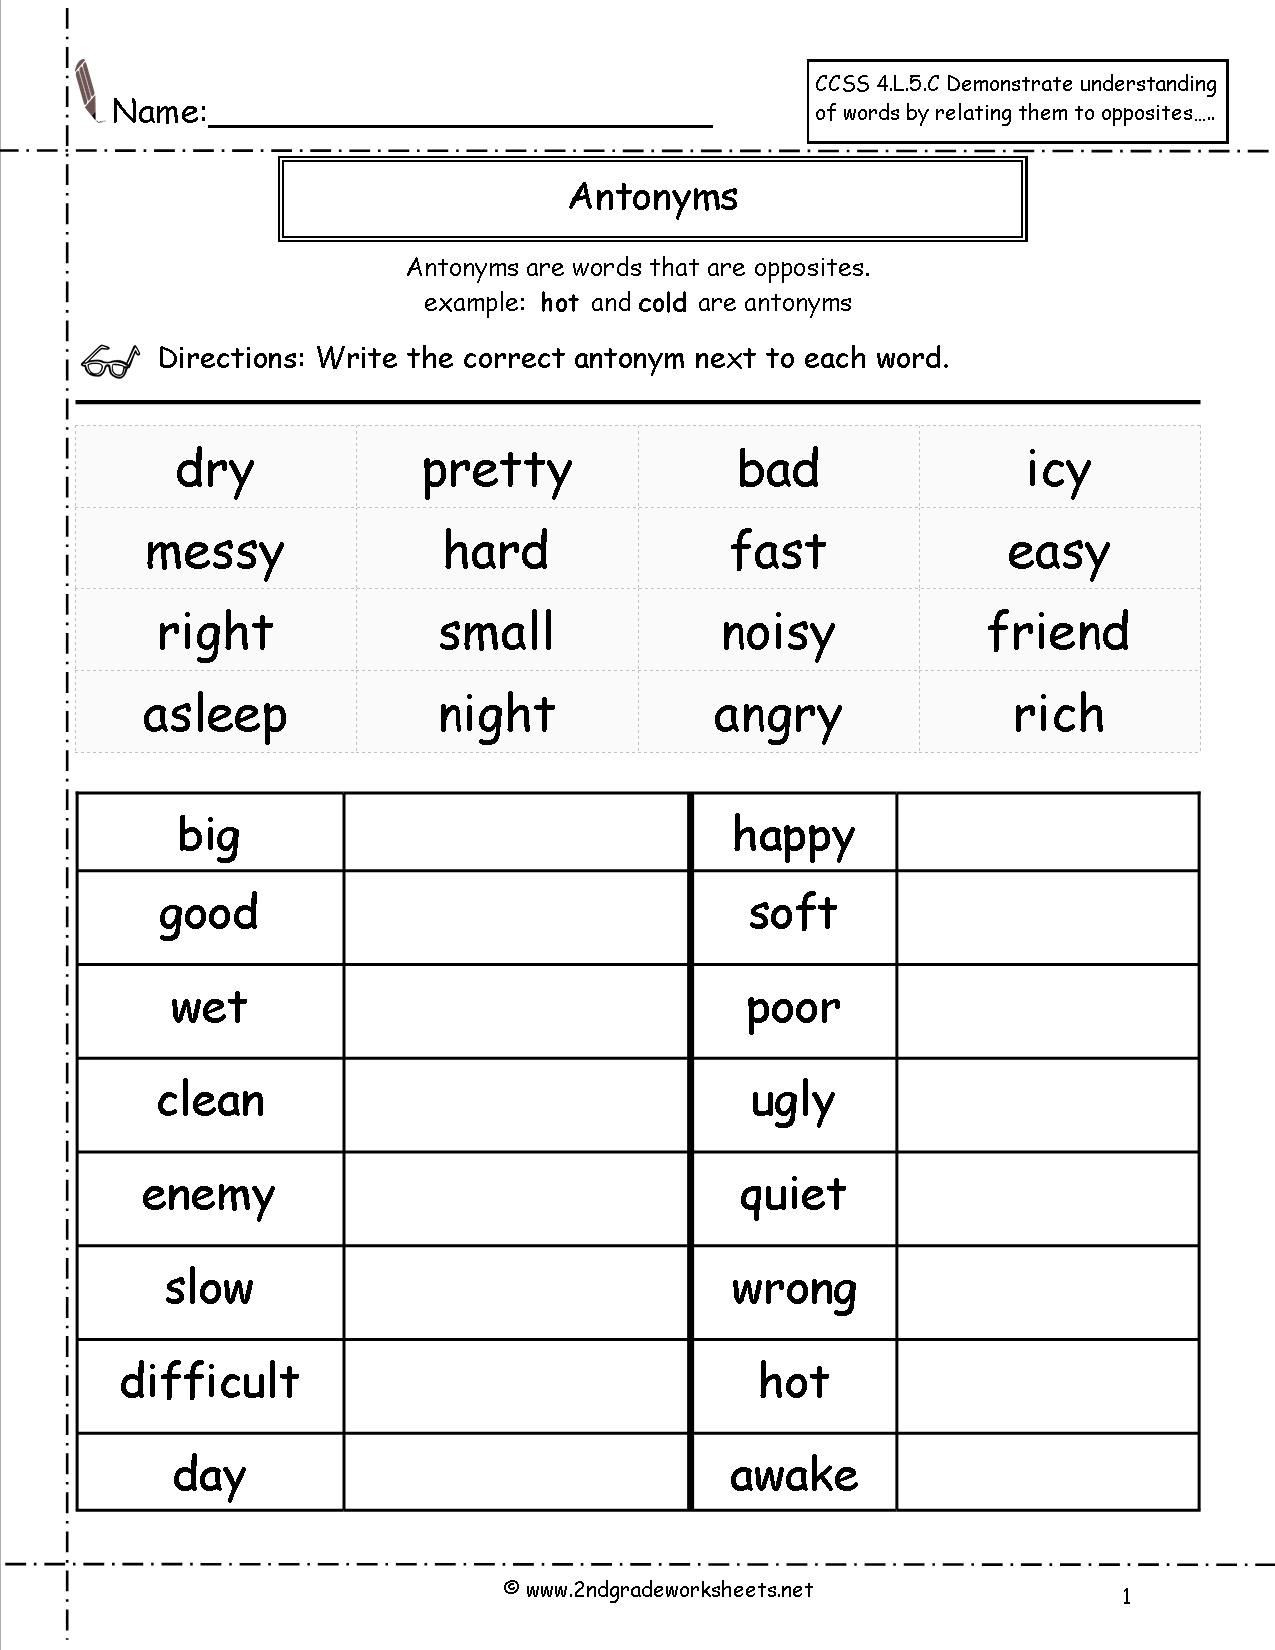 Grammar Worksheets 2nd Grade Printable Synonyms and Antonyms Worksheets